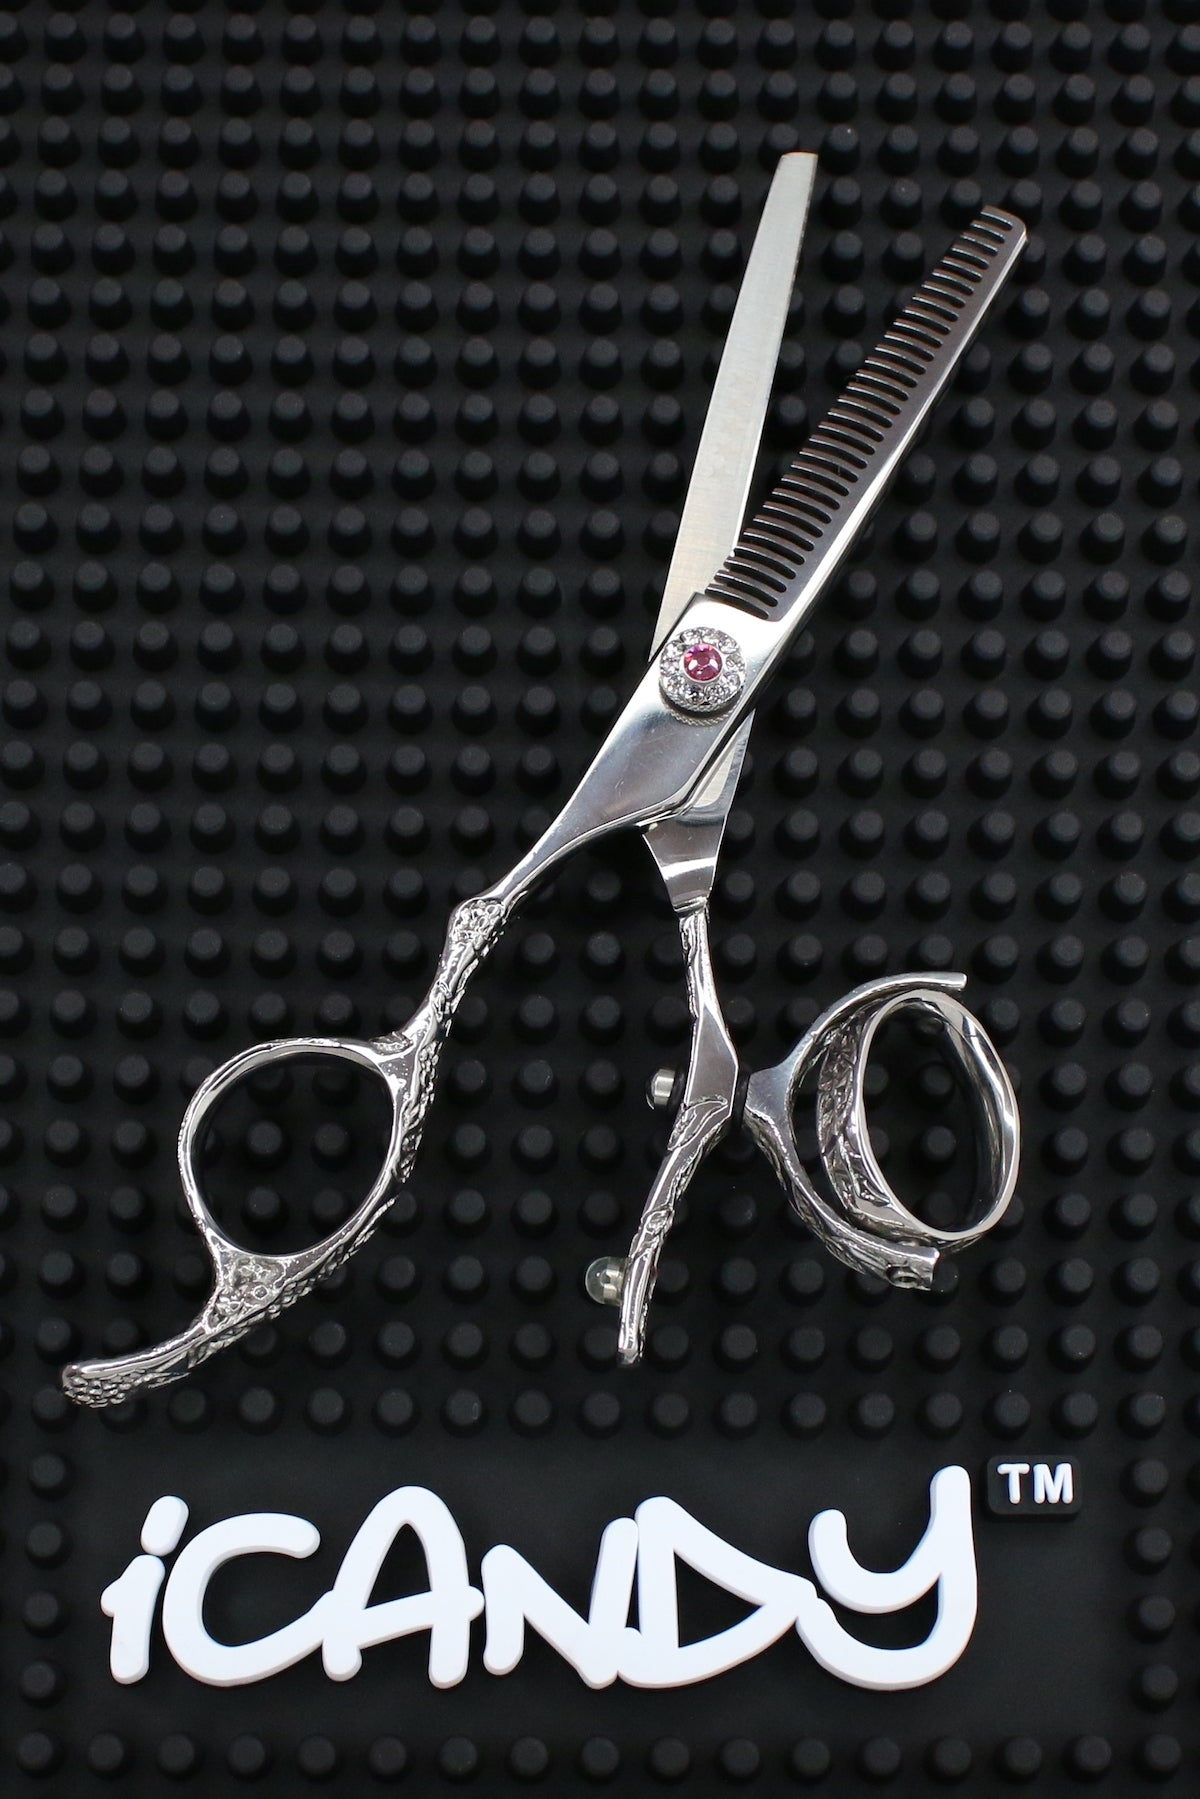 iCandy Dream Mirror Lefty Swivel-T Thinning Scissors - Limited Edition ! (5.5 inch) - iCandy Scissors